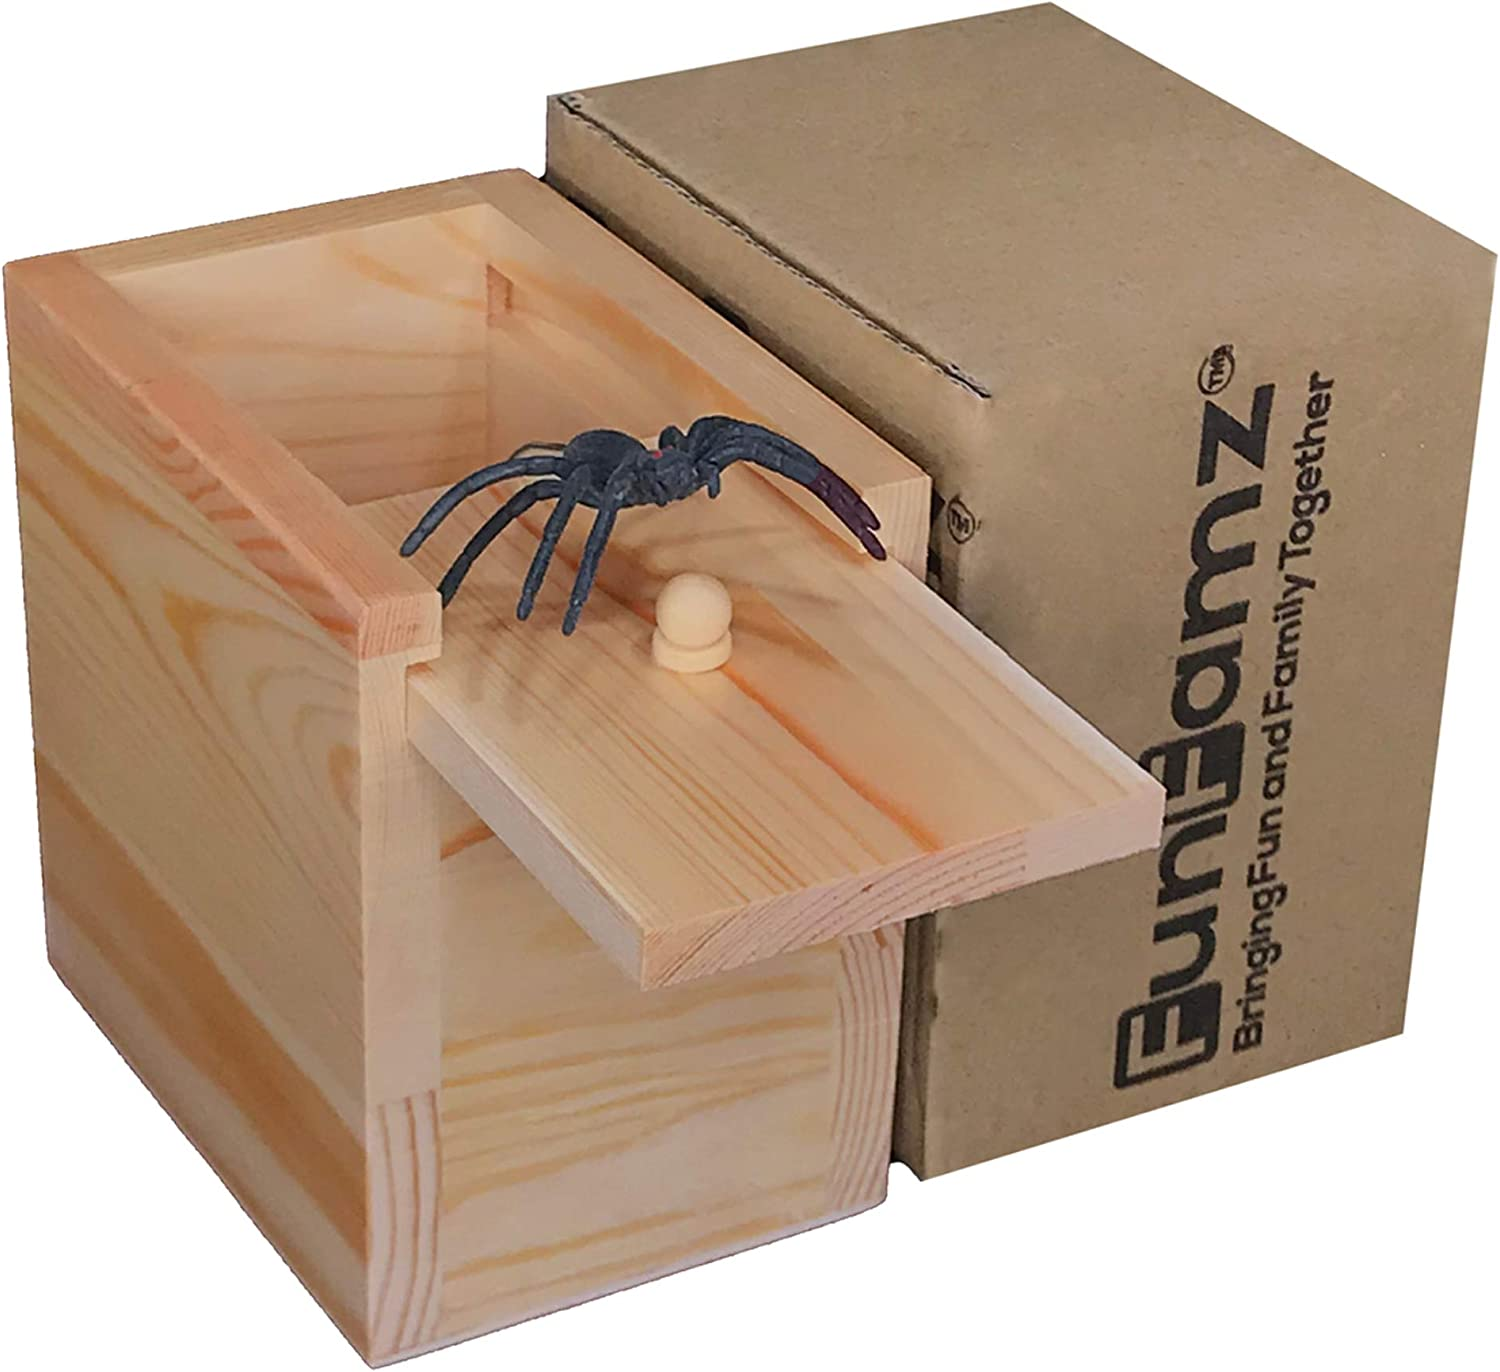 FunFamz The Original Spider Prank Box- Funny Wooden Box Toy Prank, Hilarious Halloween Money Gift Box Surprise Toy and Gag Gift Practical Joke Bromas Kit